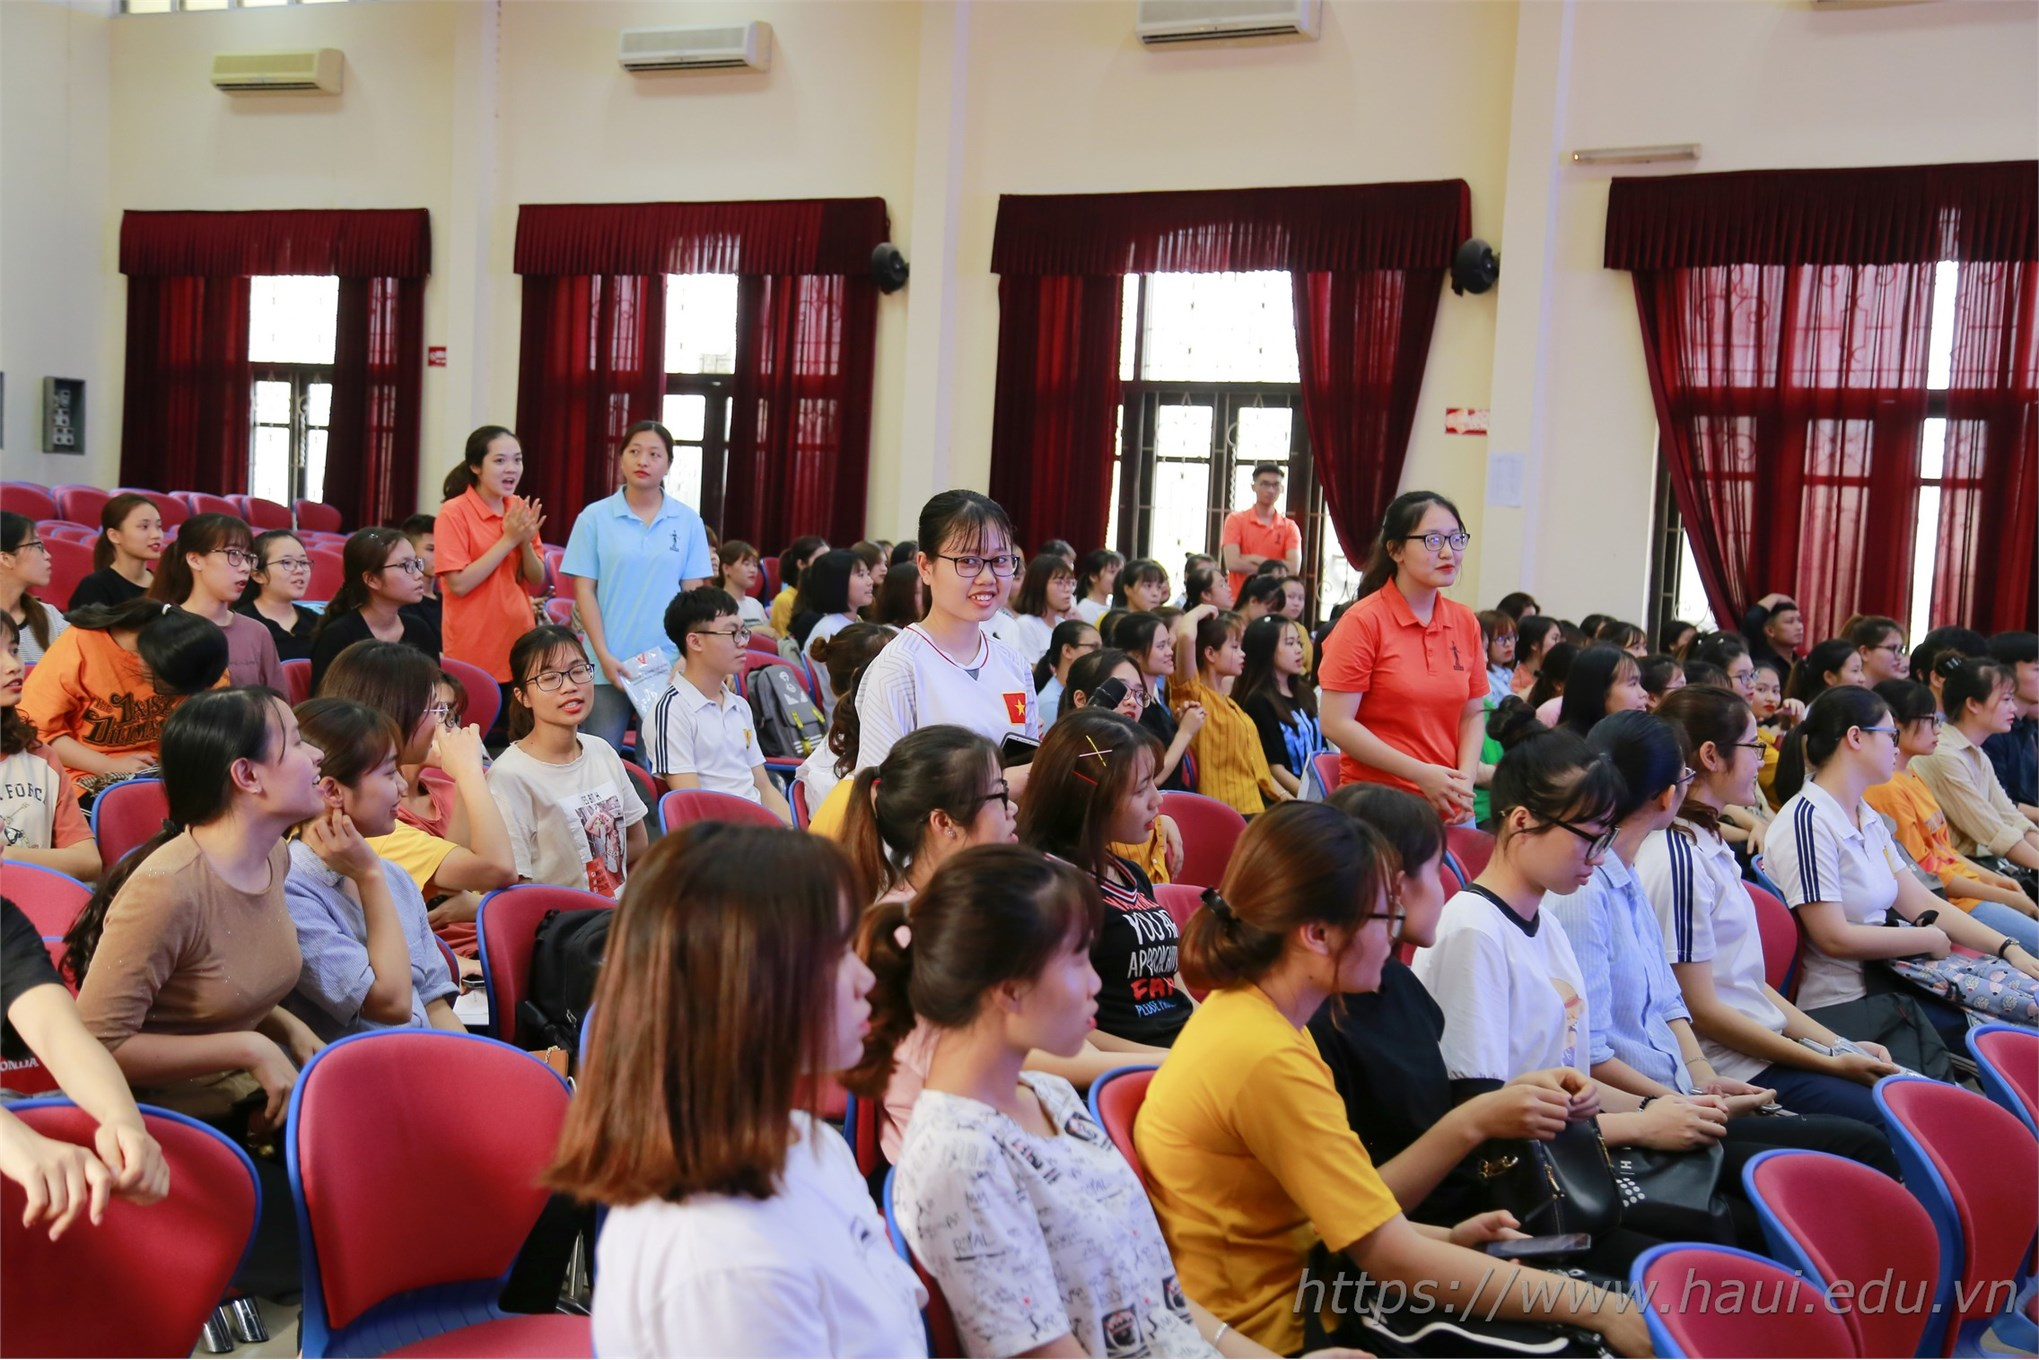 Career Orientation Conference for Accounting and Auditing students